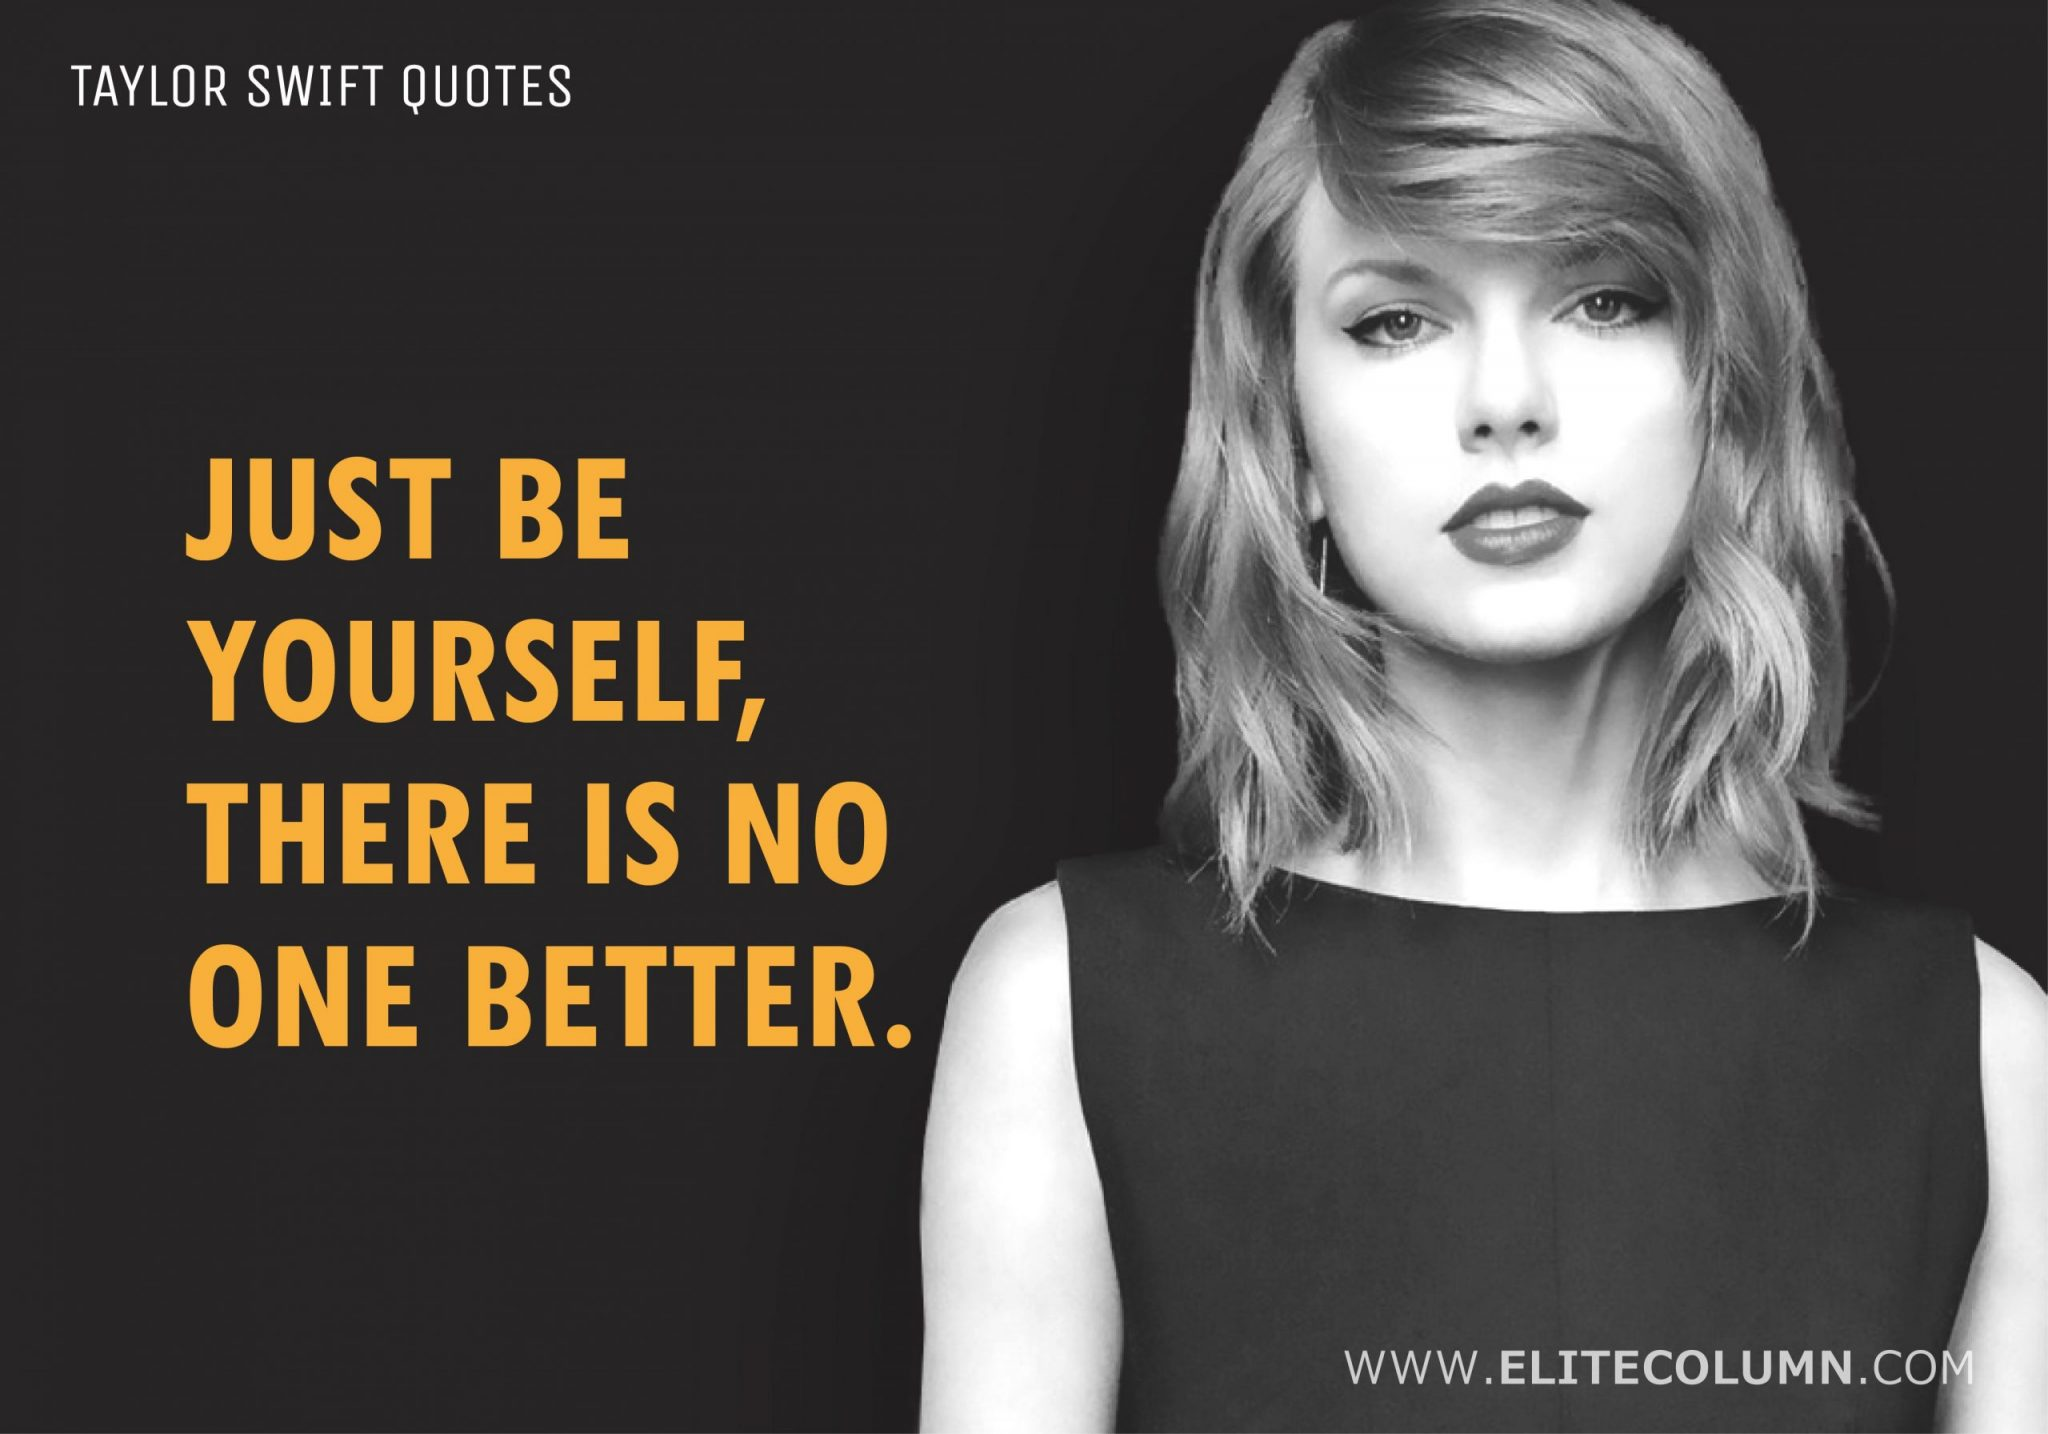 Taylor Swift Quotes (3)